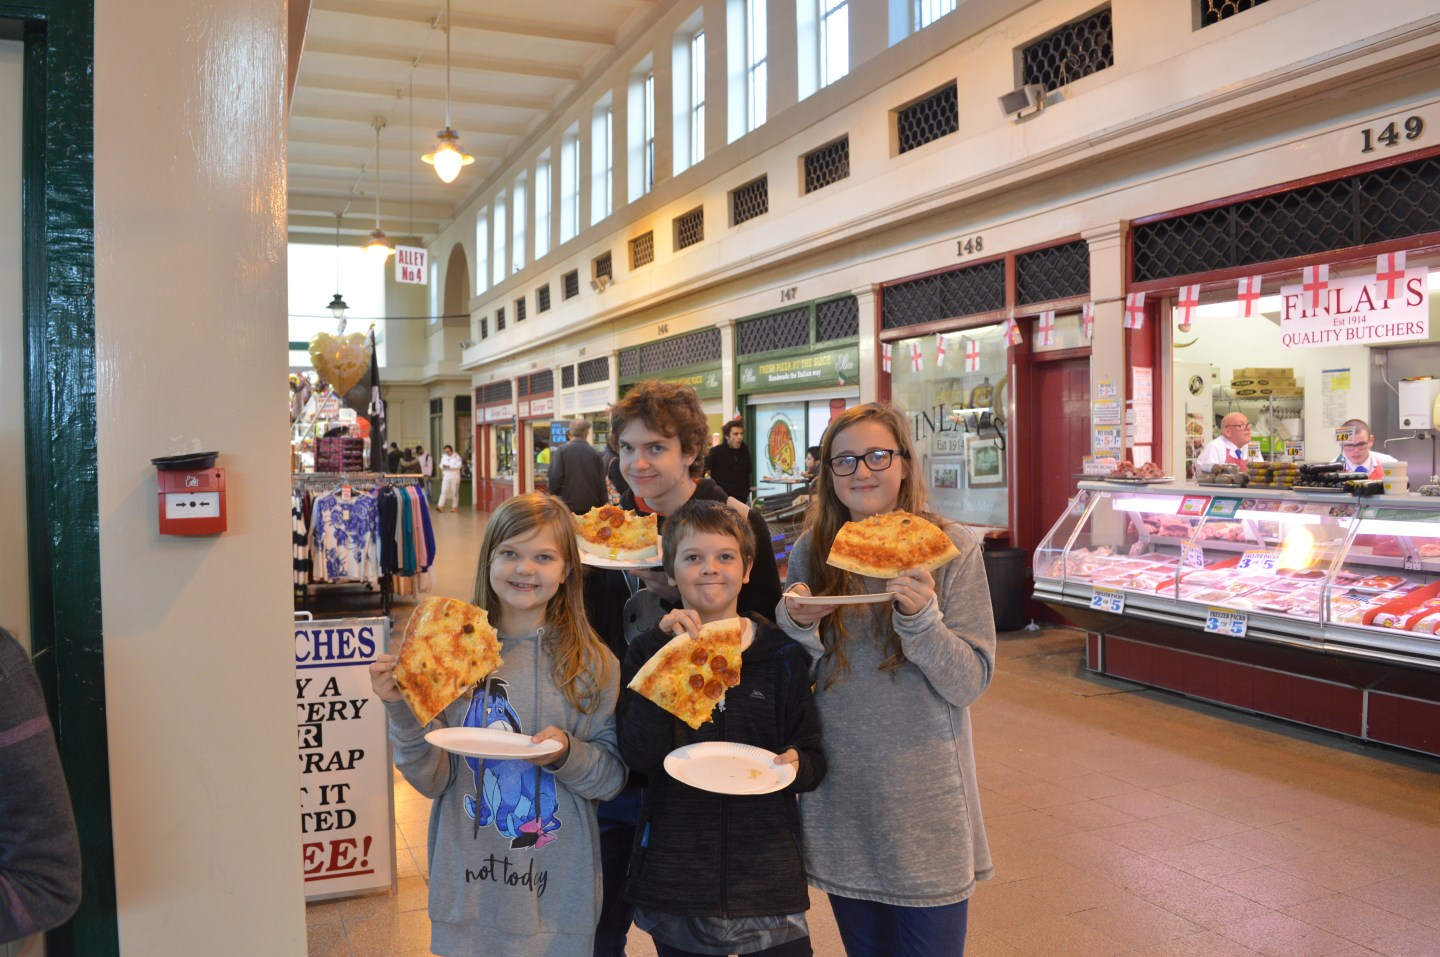 A day trip to Newcastle inside the Grainger Market and giant pizza slices